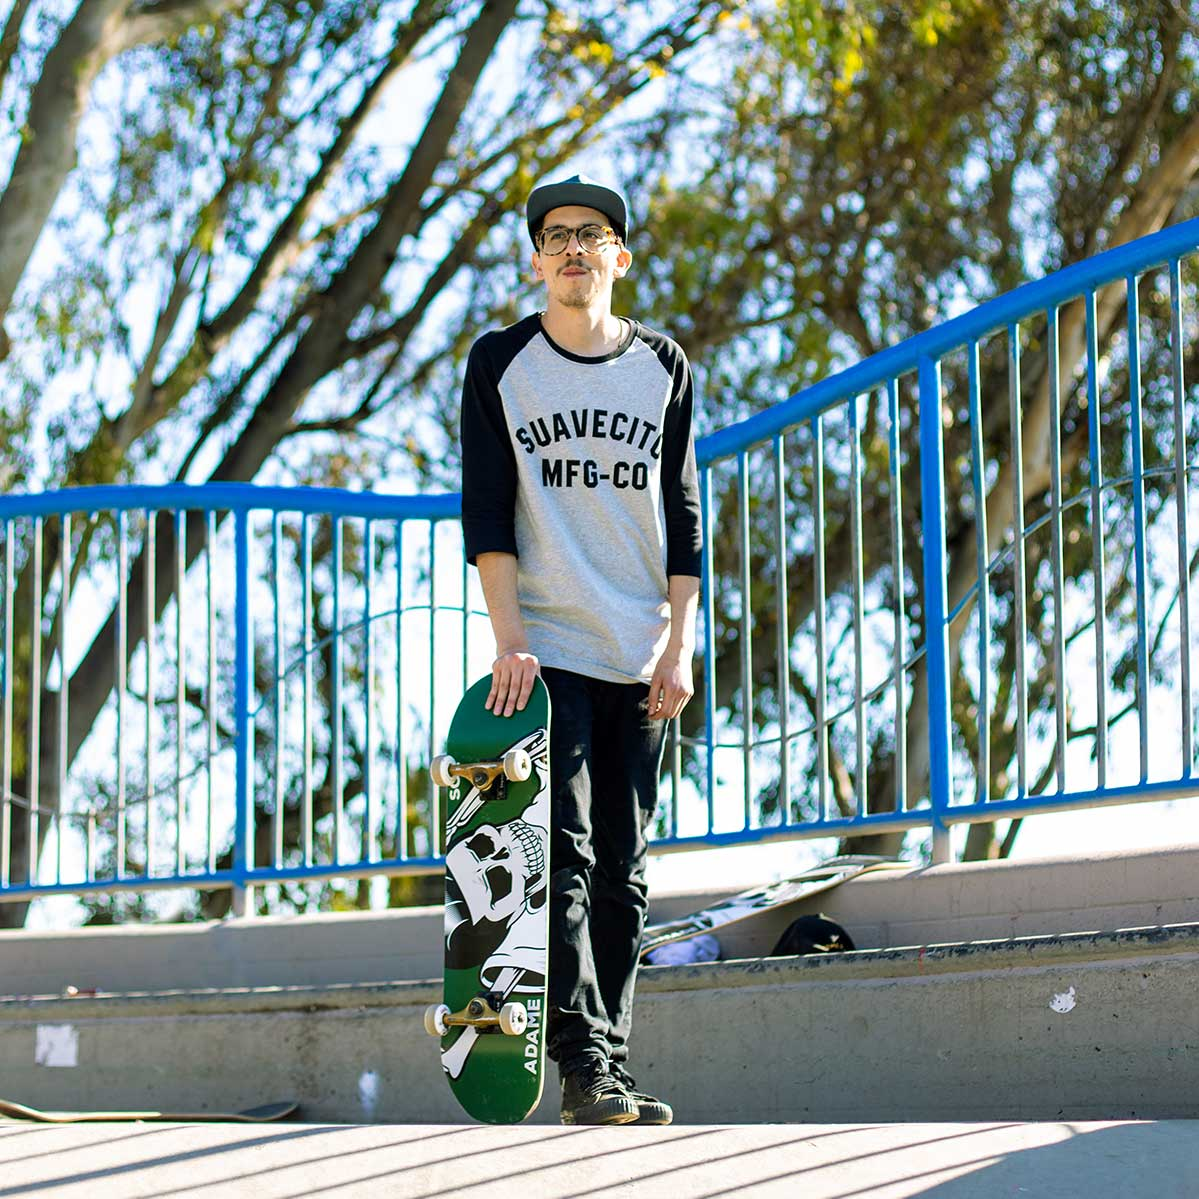 Skater wearing Suavecito grey baseball tee with black sleeves holding a green Suavecito skate deck